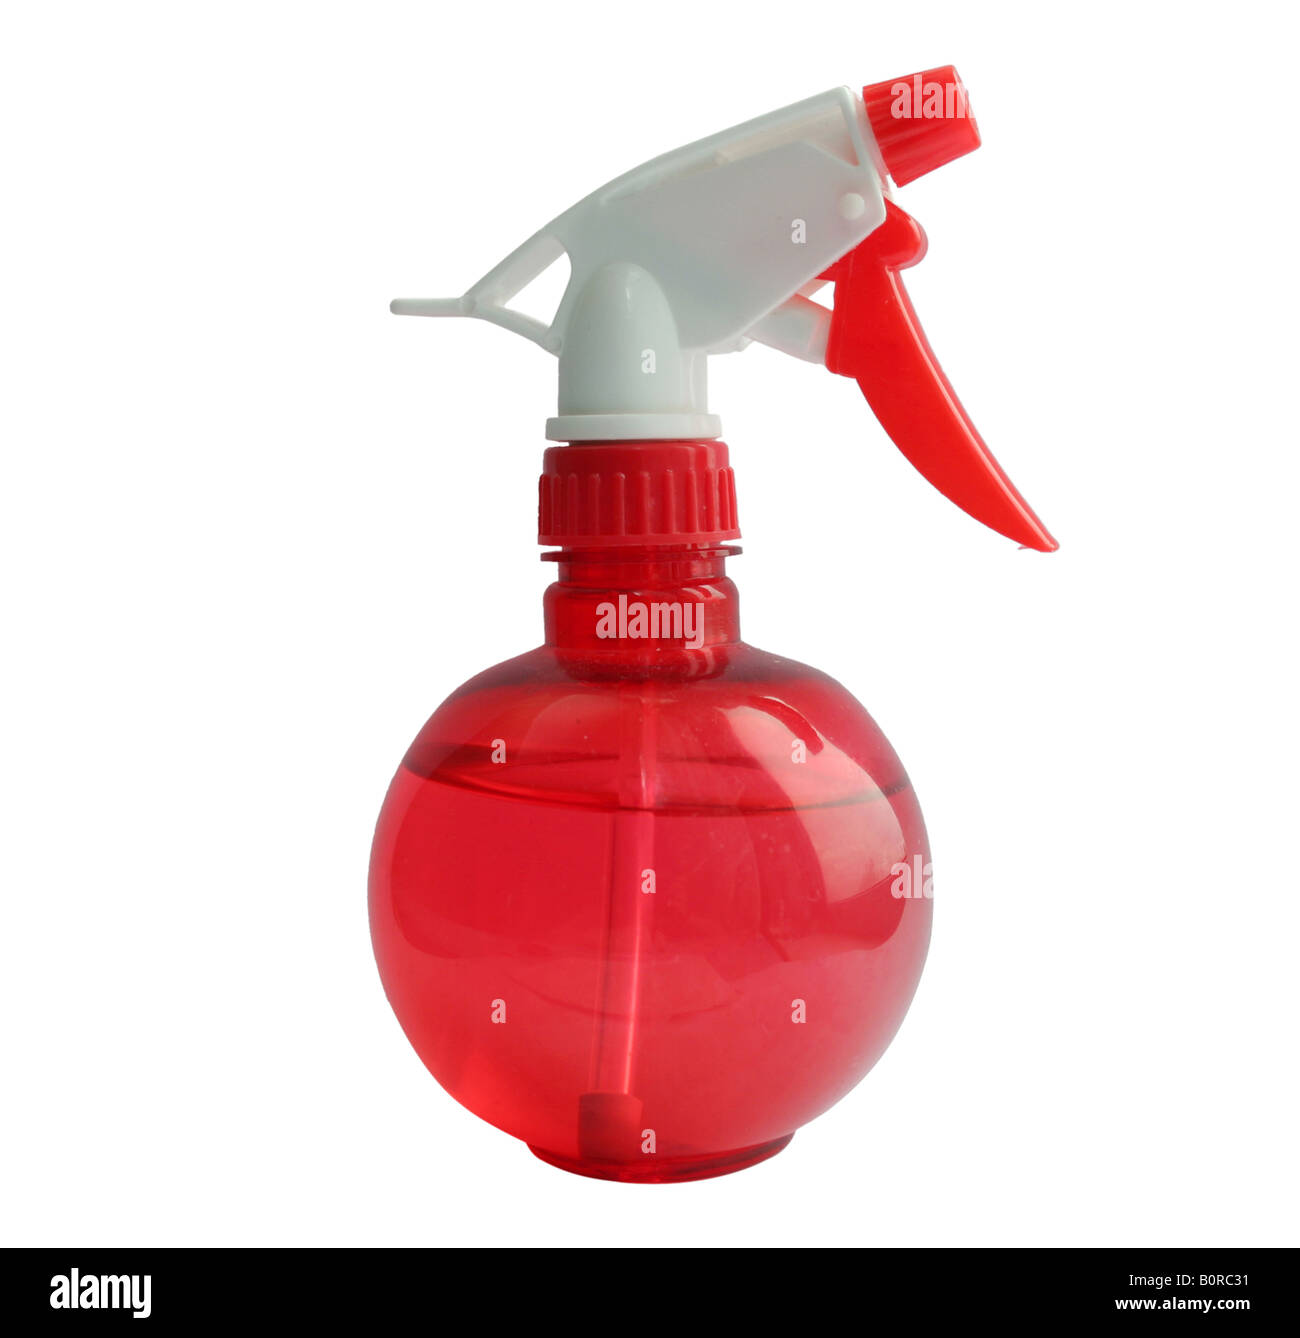 Isolated red atomizer - Stock Image